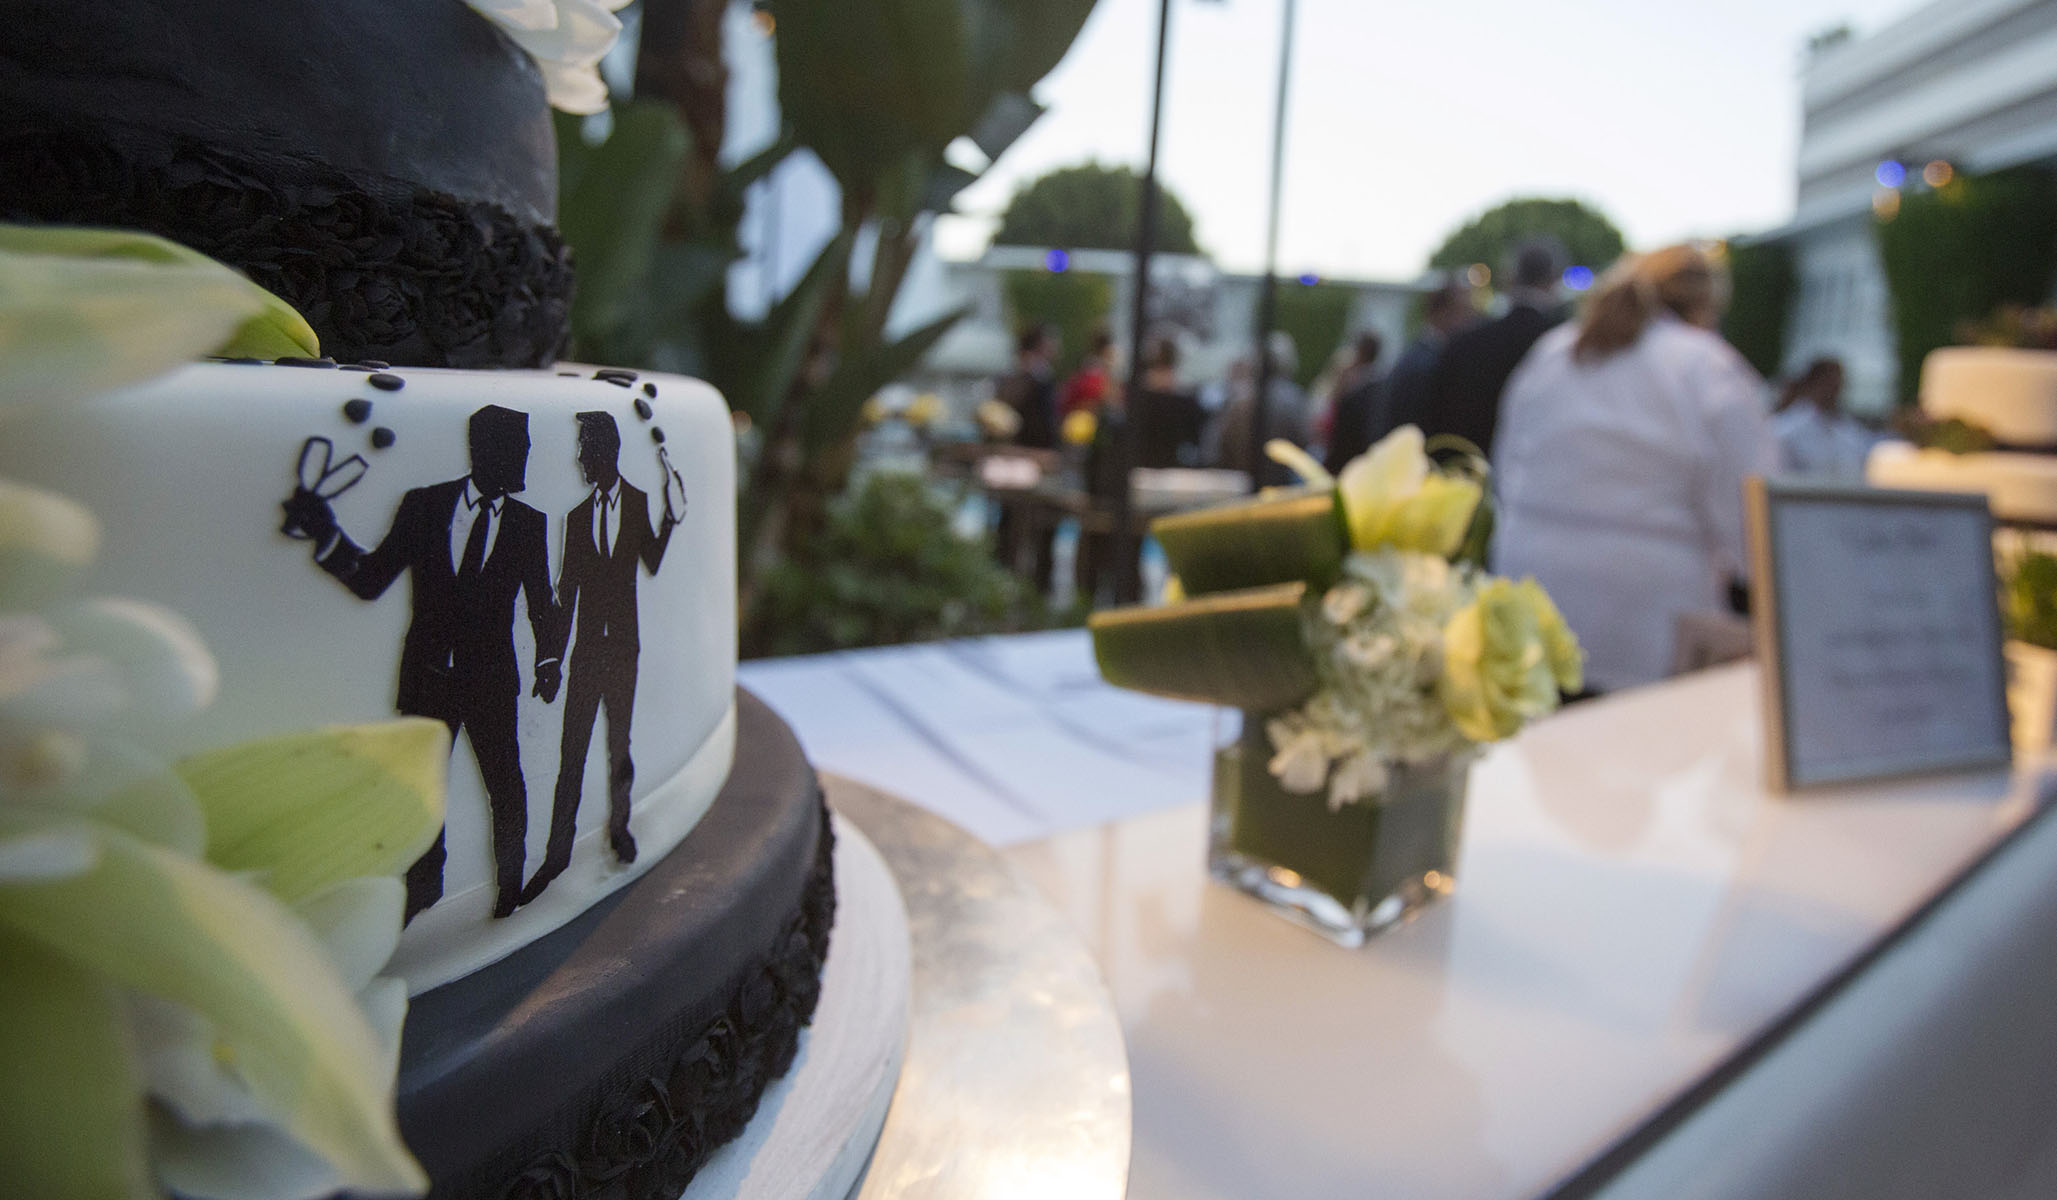 Hat Stand Freedom Gay Wedding Cake Controversy Freedom Extends To Bakeries